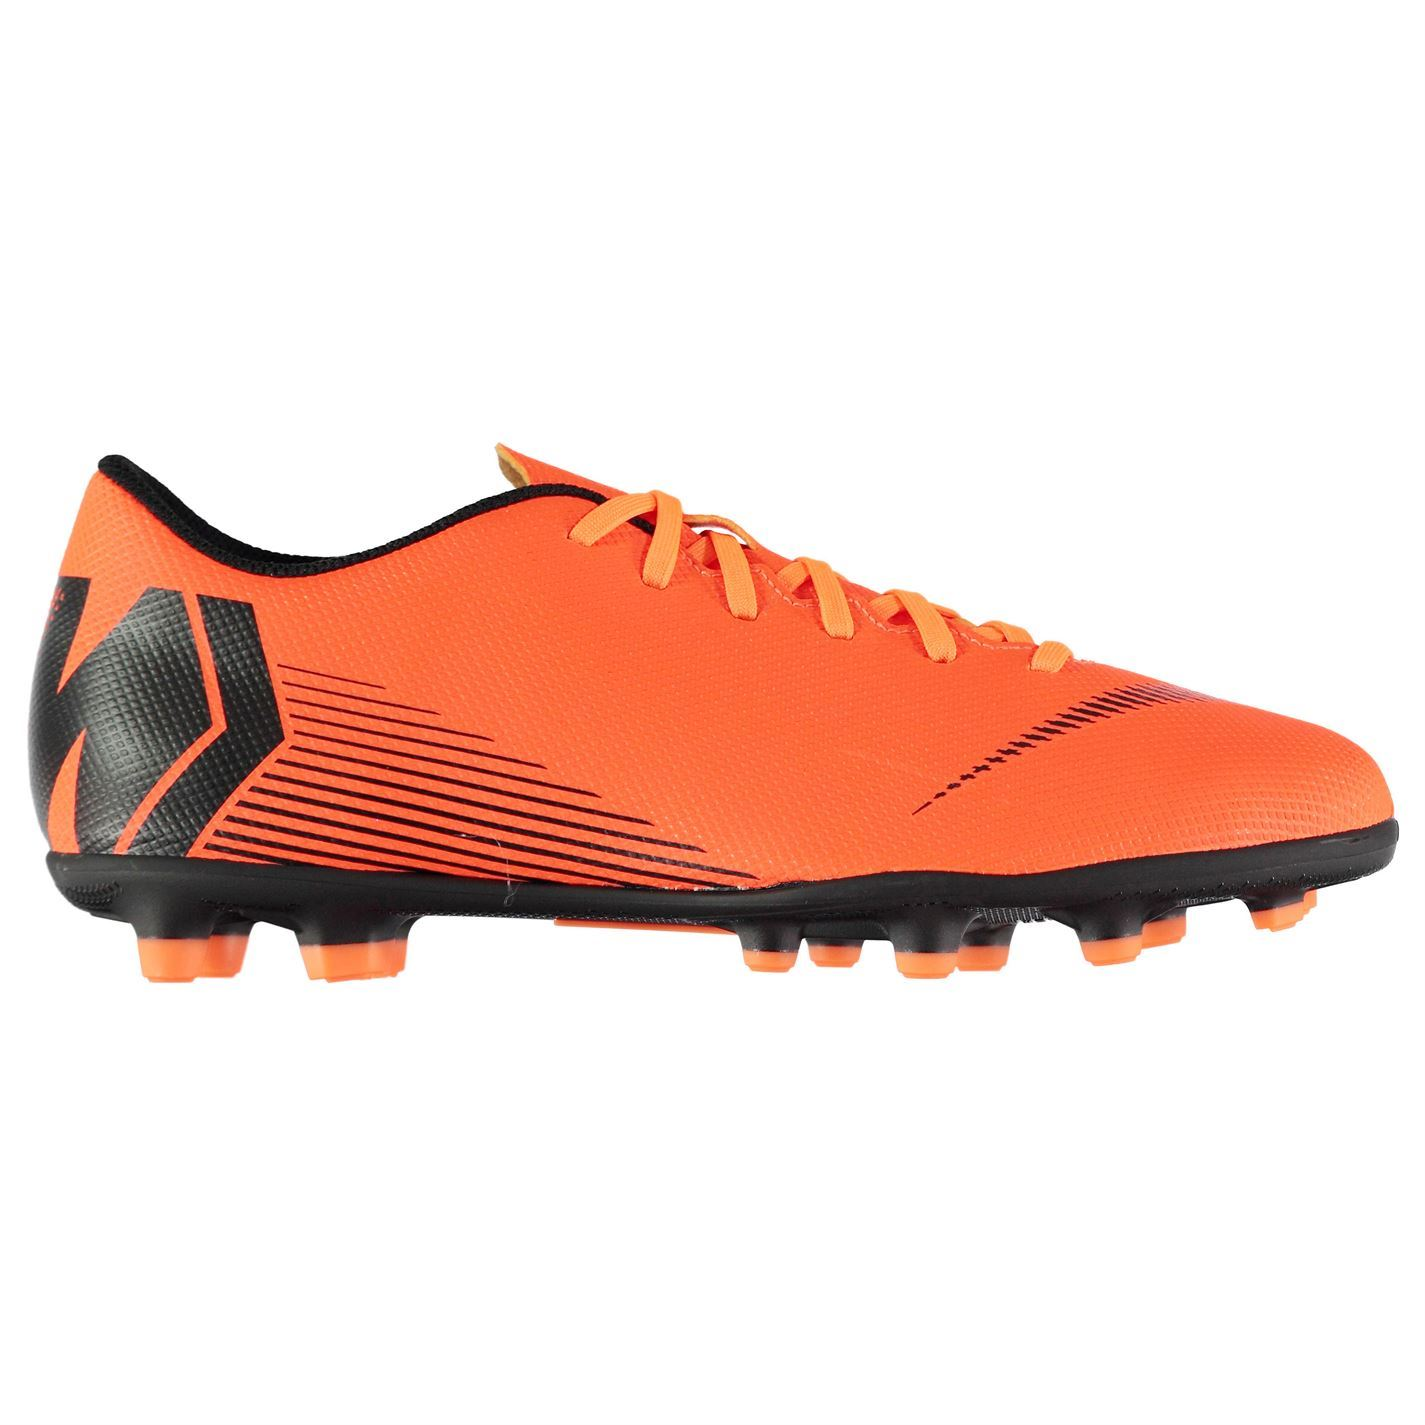 detailed look 893d8 5e077 ... Nike Mercurial Vapor Club FG Firm Ground Football Boots Mens Soccer  Shoes Cleats